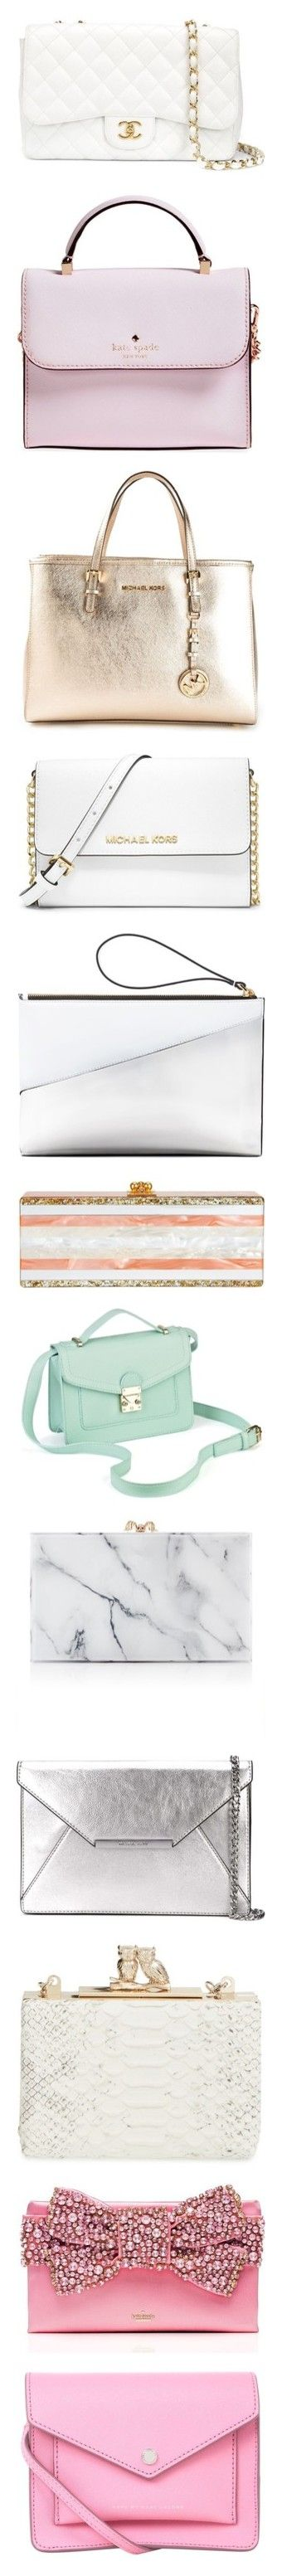 """Handbag Collection"" by littlemisscupcake88 ❤ liked on Polyvore featuring bags, handbags, shoulder bags, white, quilted shoulder bag, white leather shoulder bag, leather shoulder bag, quilted leather handbags, white leather purse and purses"